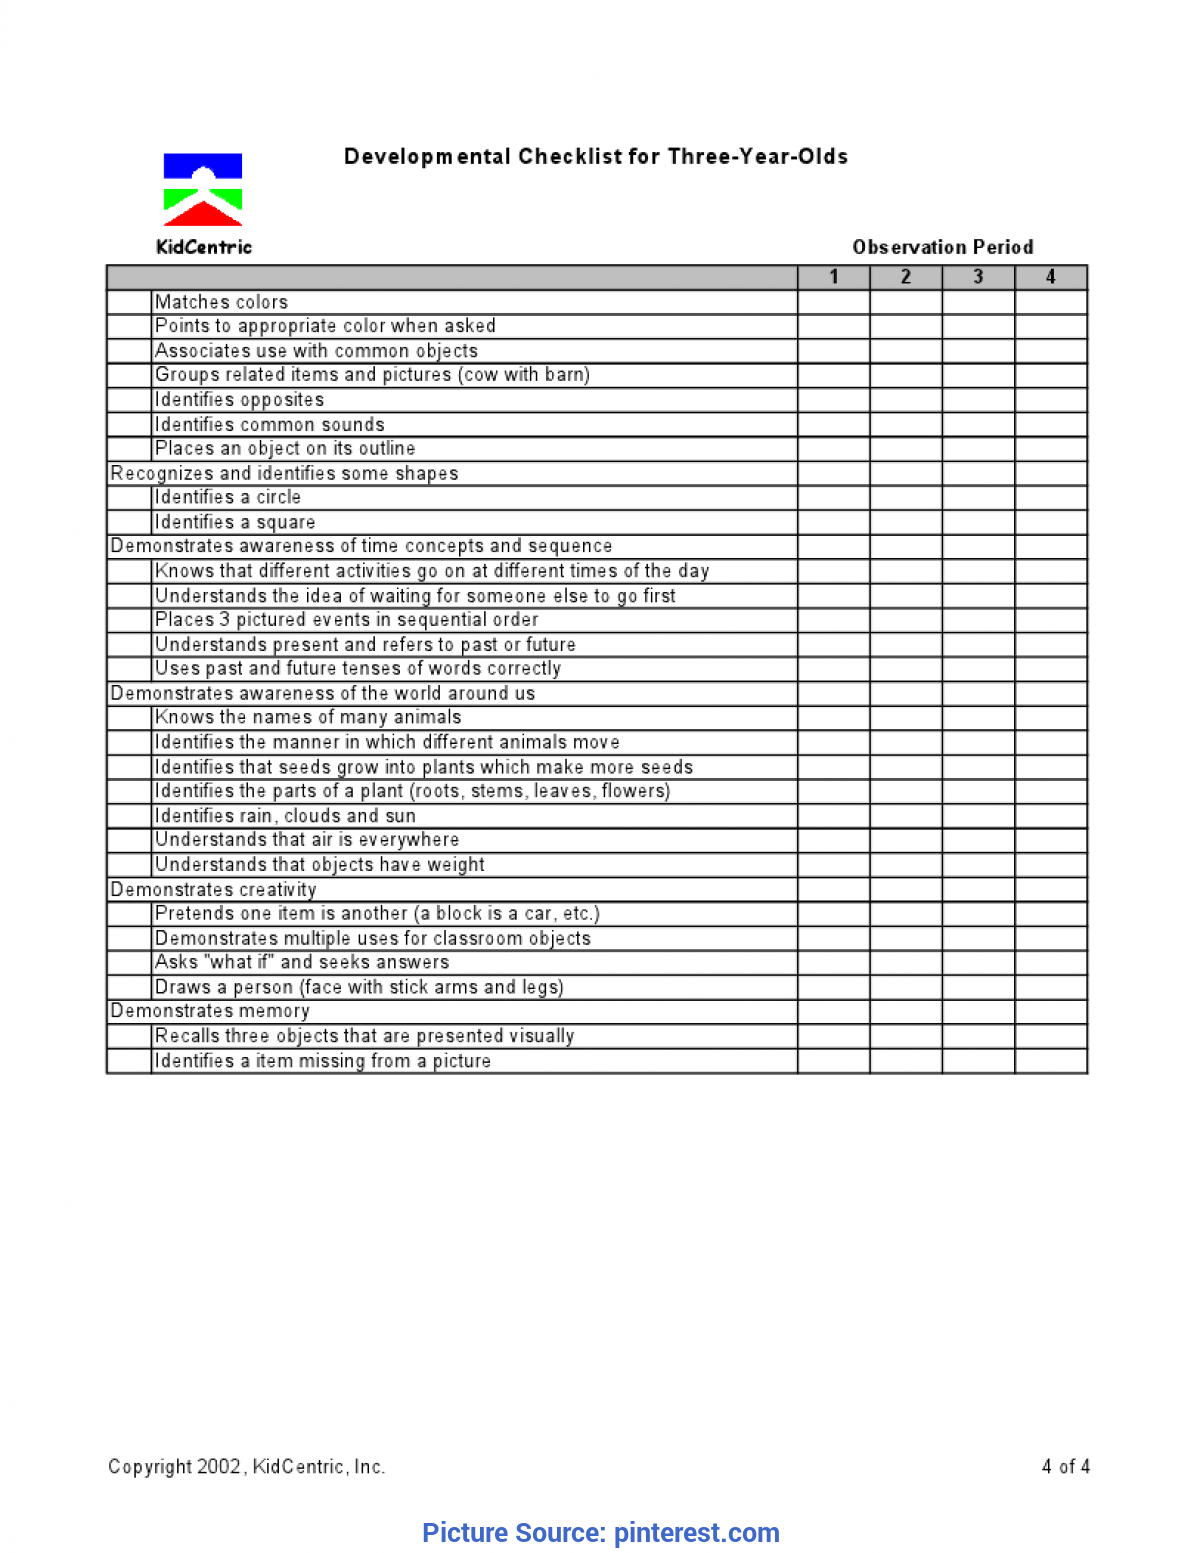 Regular 4 Year Old School Curriculum Assessment 3 Year Old Page 4 Of 4 | Assessment Ideas | Pinteres